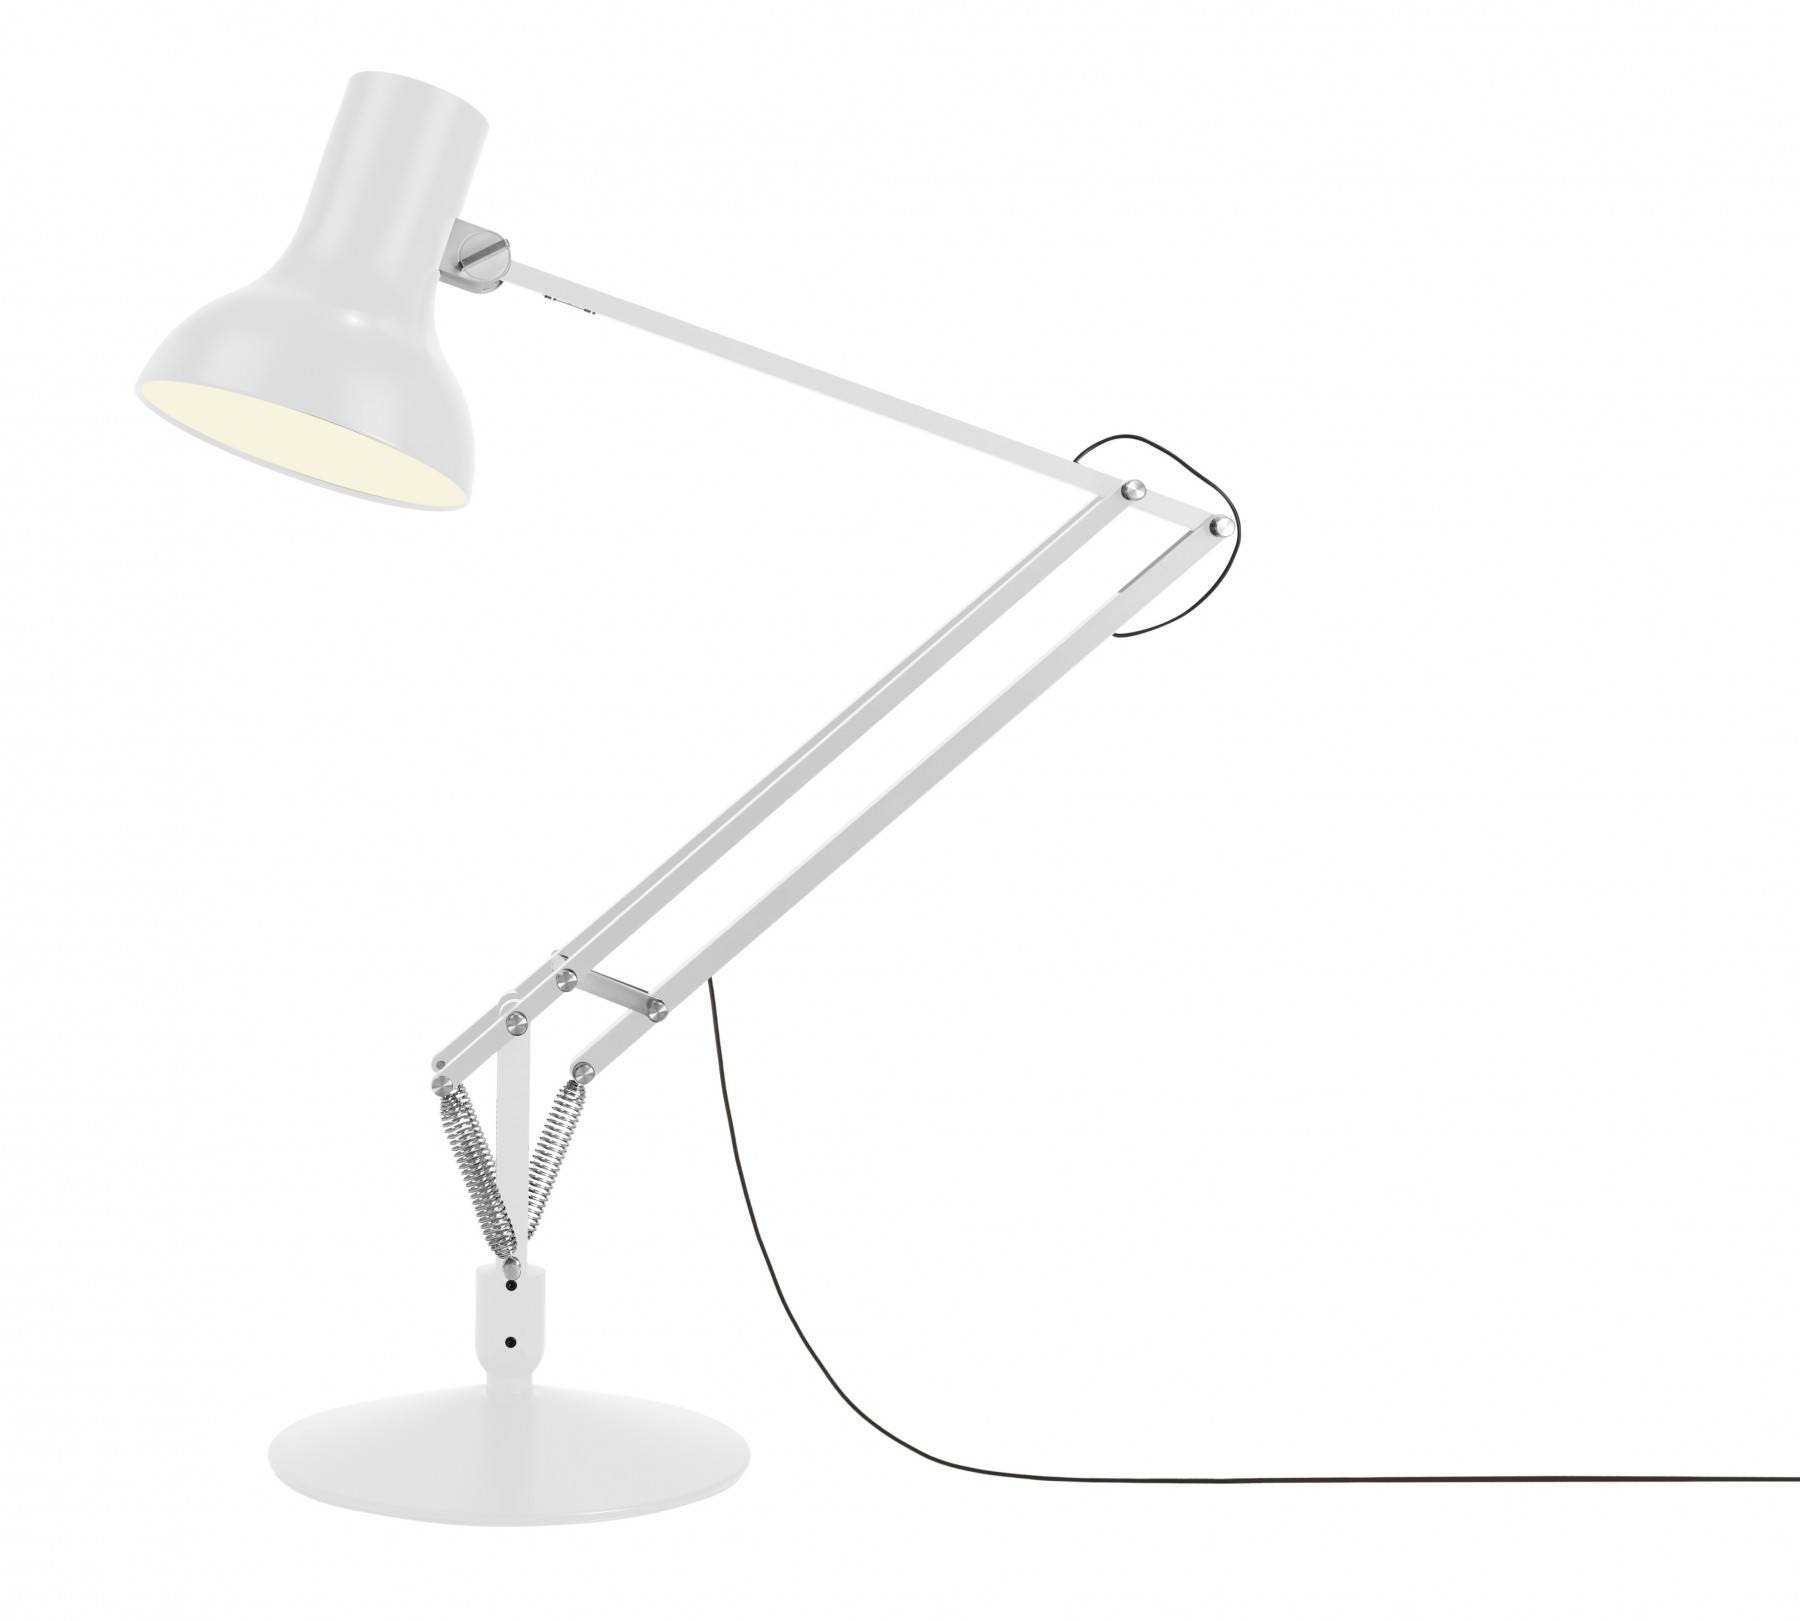 Anglepoise type 75 giant floor lamp gr shop canada - Giant anglepoise lamp ...